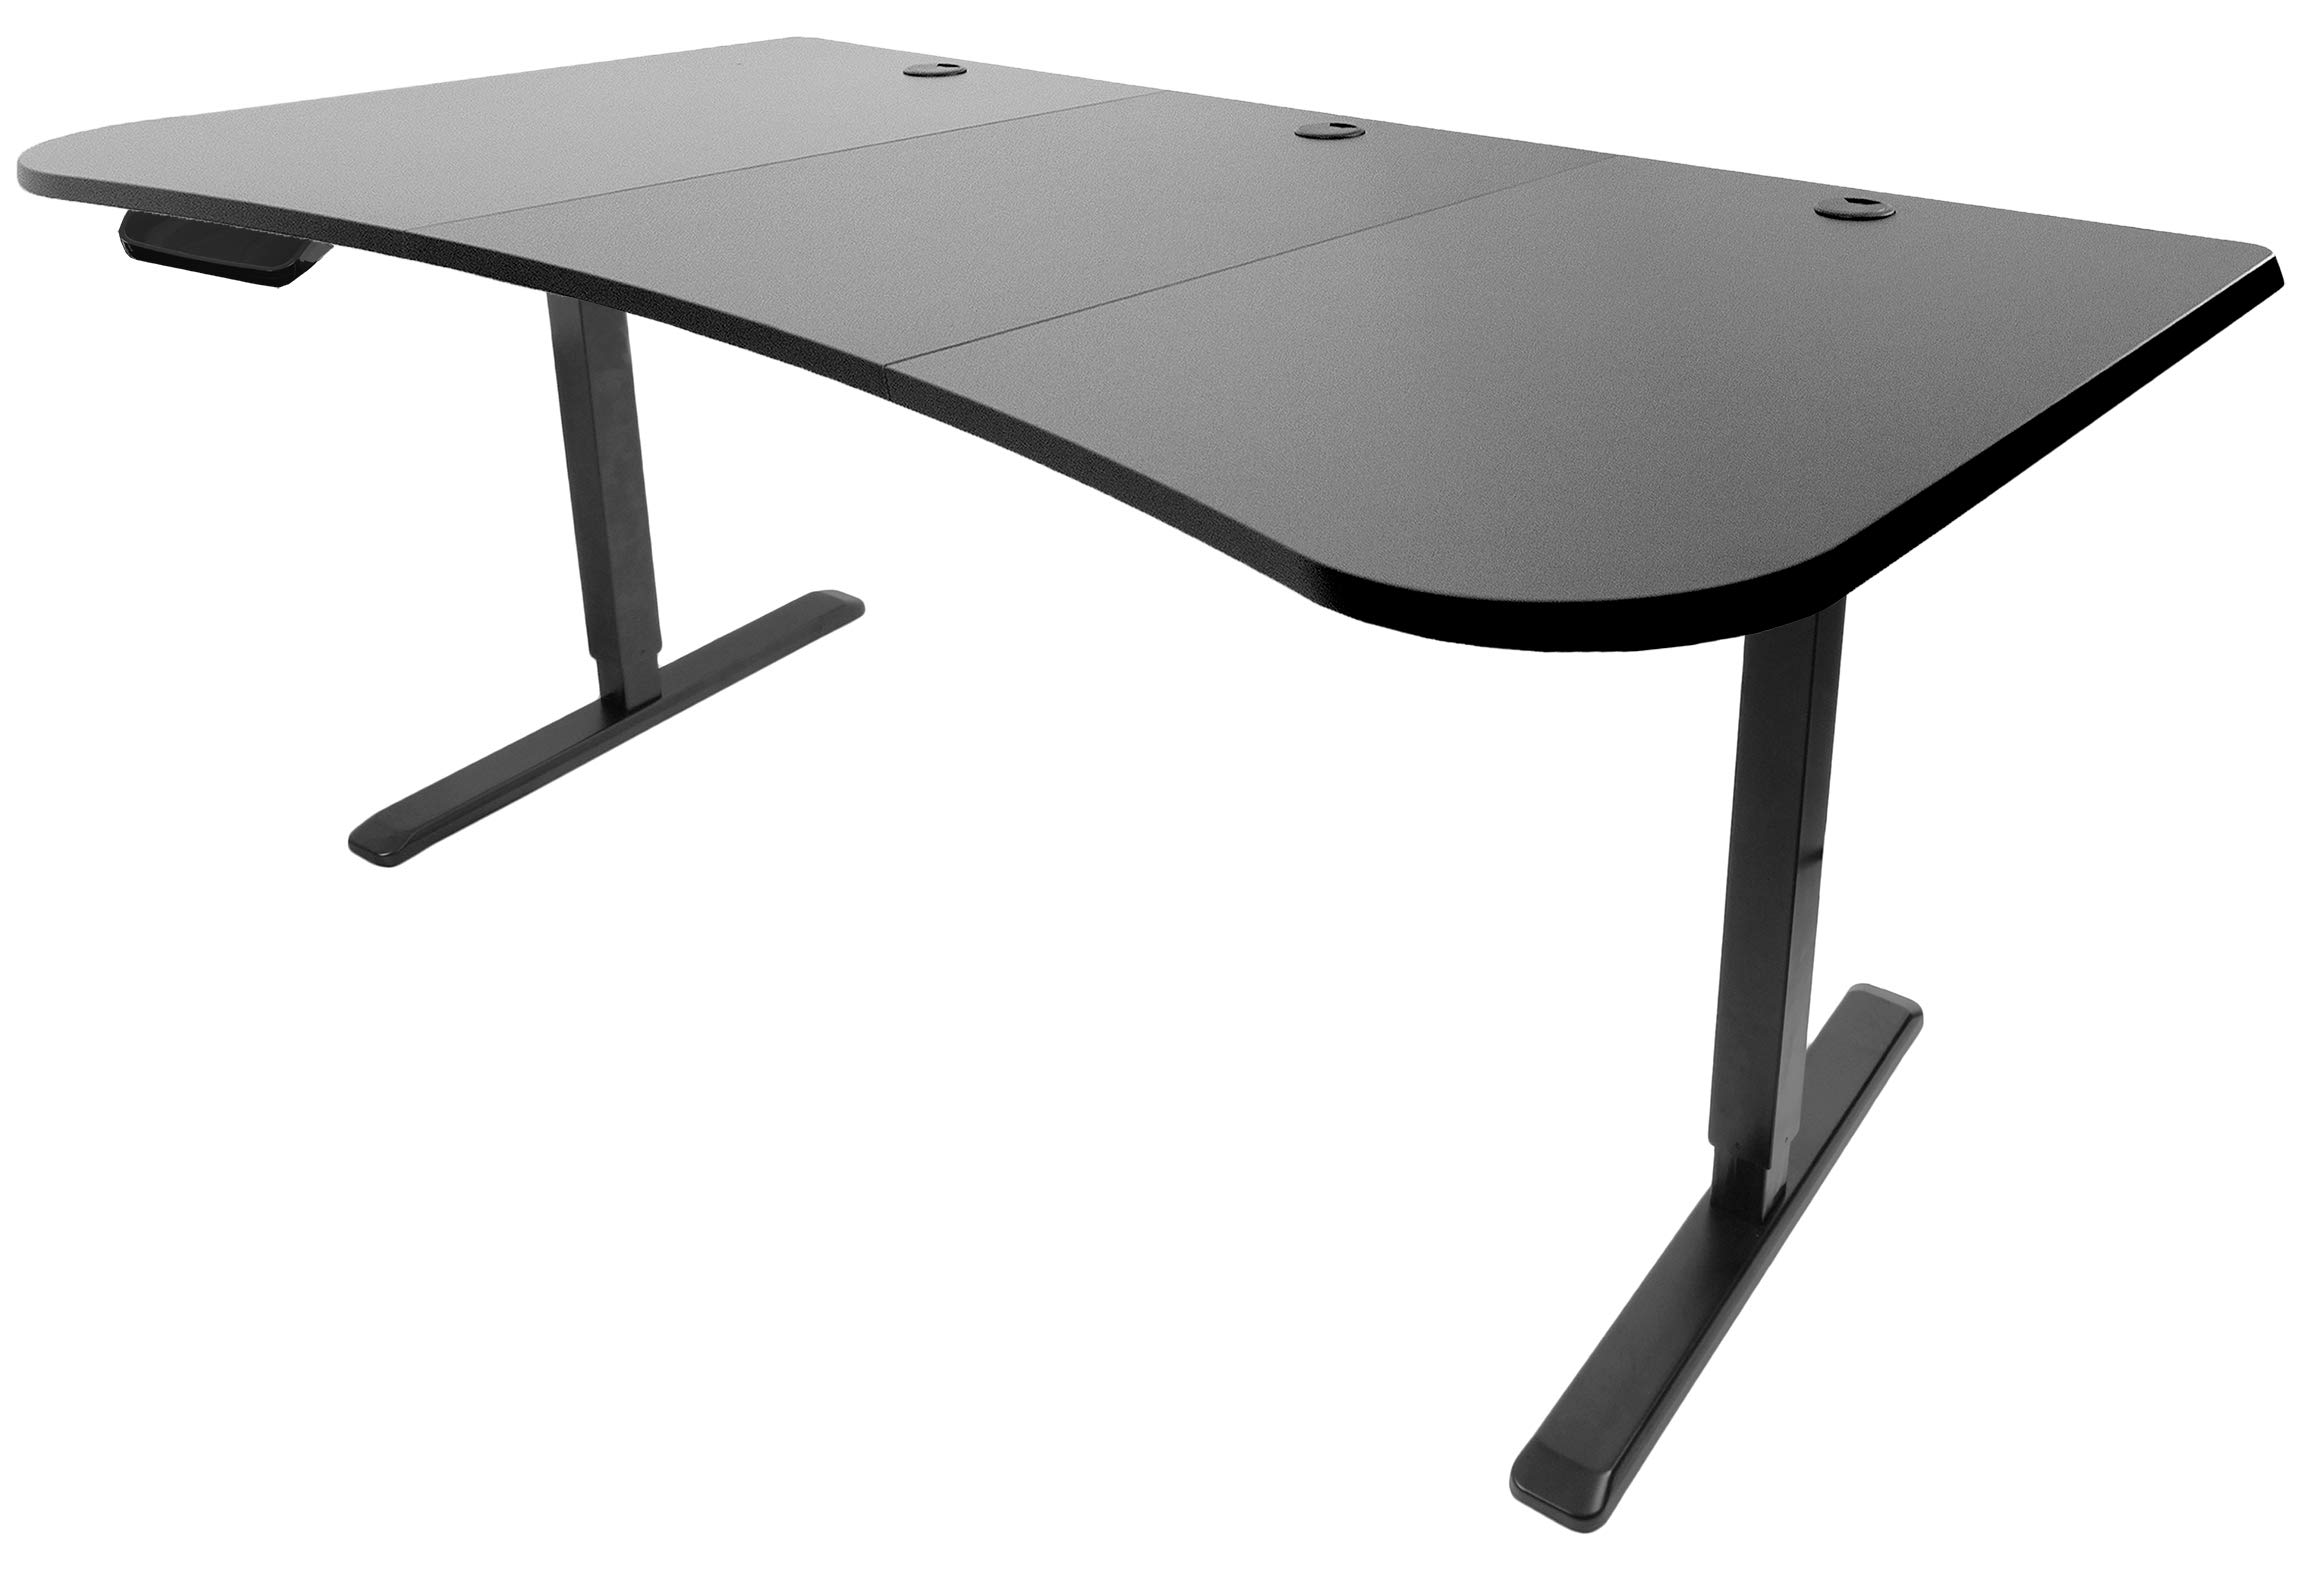 VIVO Black Electric Height Adjustable Stand Up Desk Frame, Workstation with 63 x 32 inch Table Top and Controller | Frame and Desktop Combo (DESK-KIT-2E1B) by VIVO